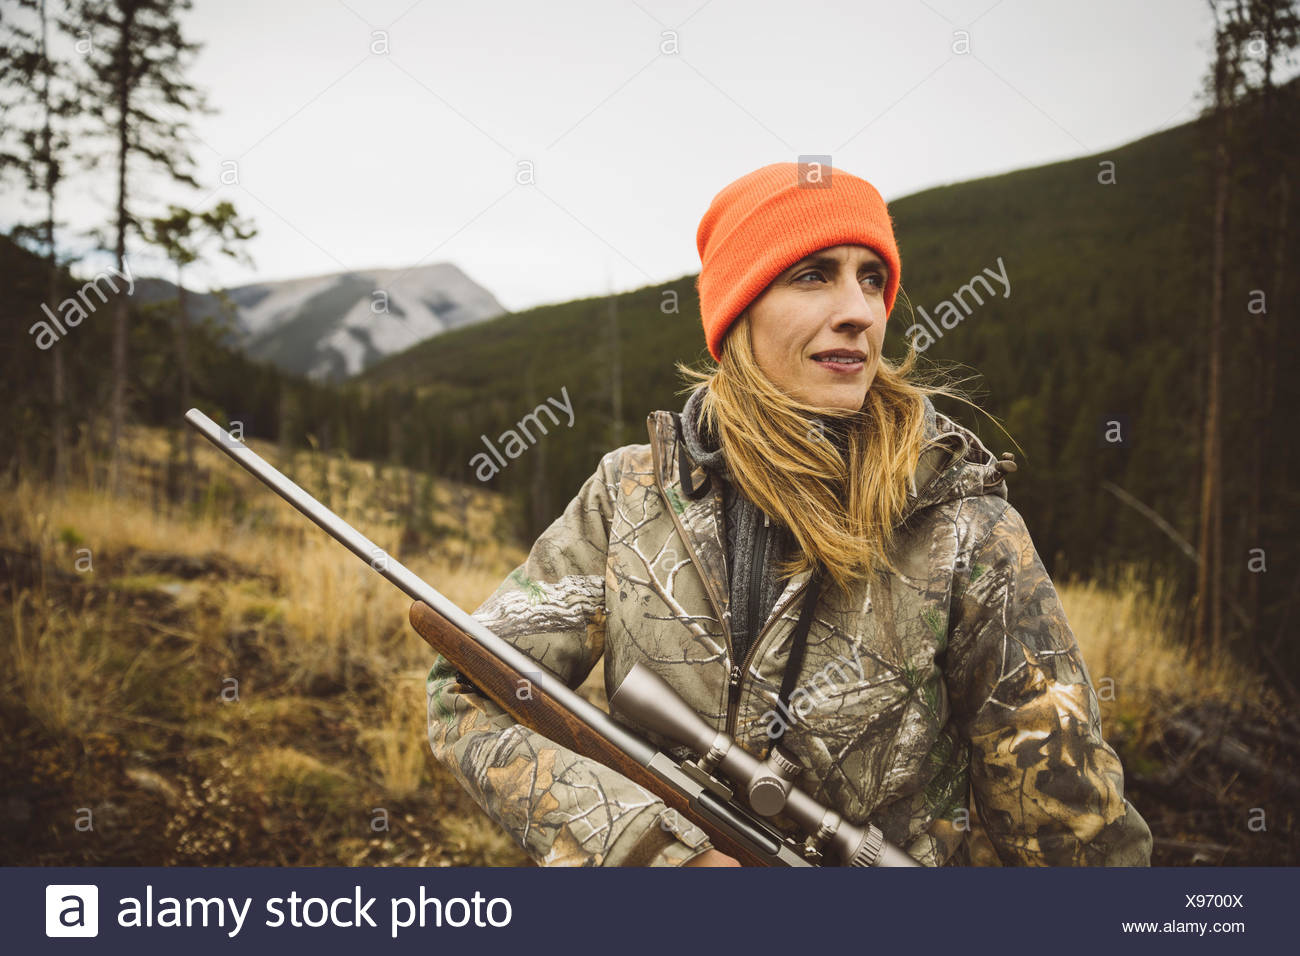 Portrait female hunter in camouflage and orange beanie holding hunting  rifle in field b3b9bc37bfd